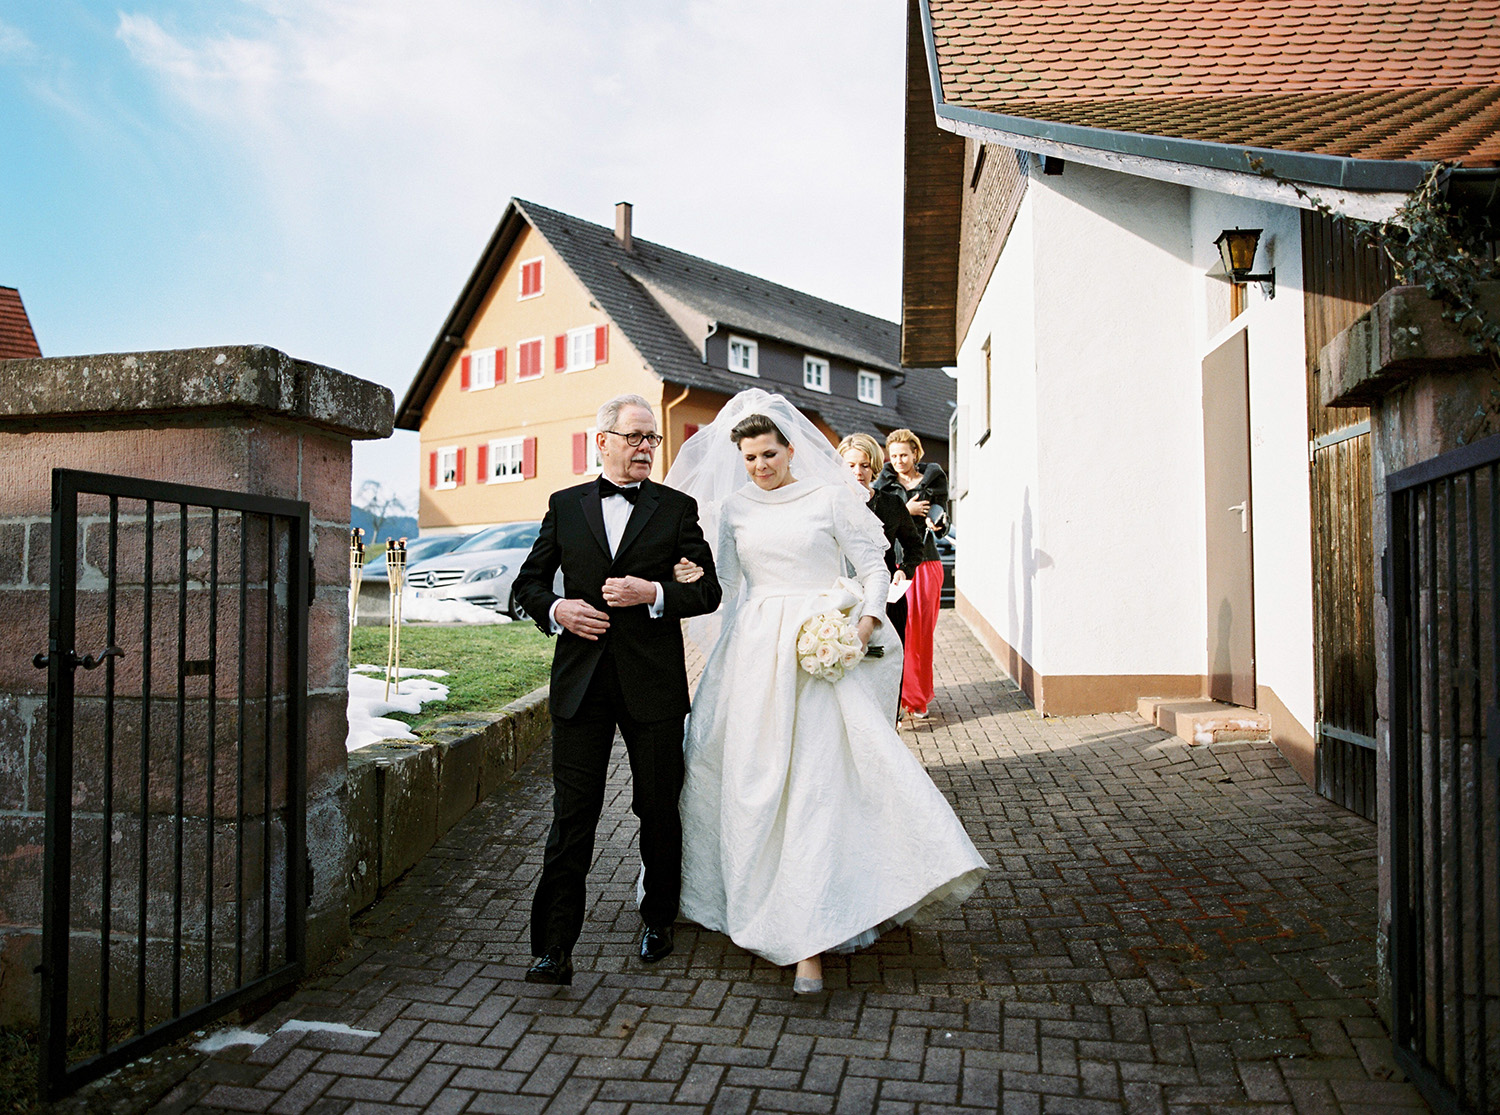 Fotograf Konstanz - Hochzeit Stephanie Stefan Baiersbronn Bareiss Elmar Feuerbacher Photography 36 - Noble winter wedding in Baiersbronn in Bareiss  - 109 -